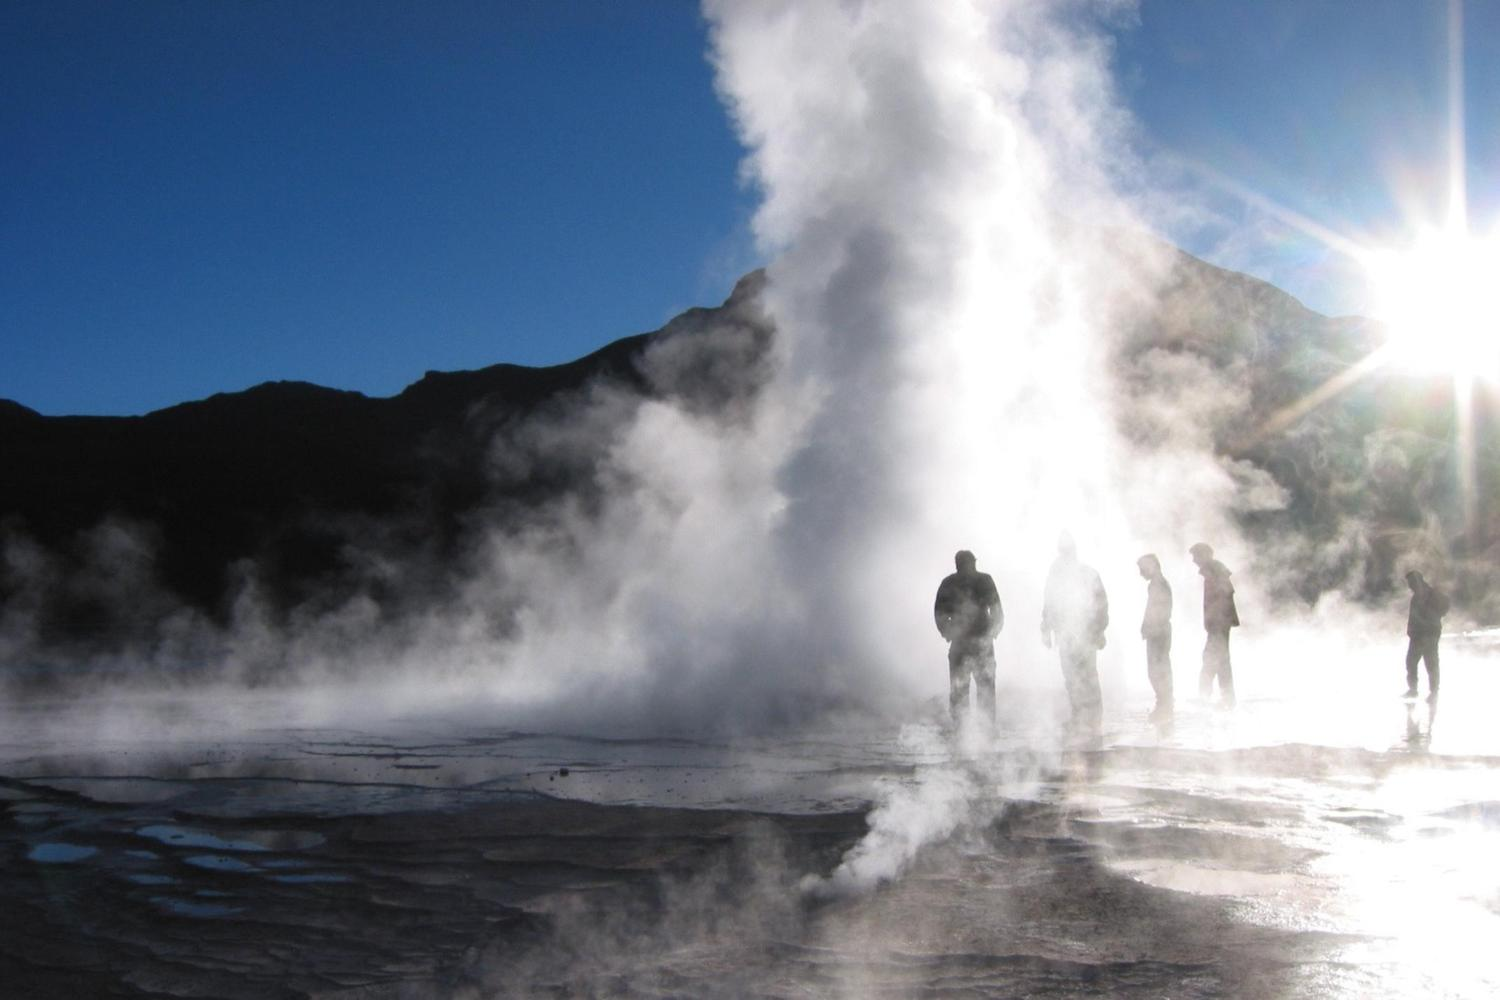 Dawn steam at the Tatio Geysers